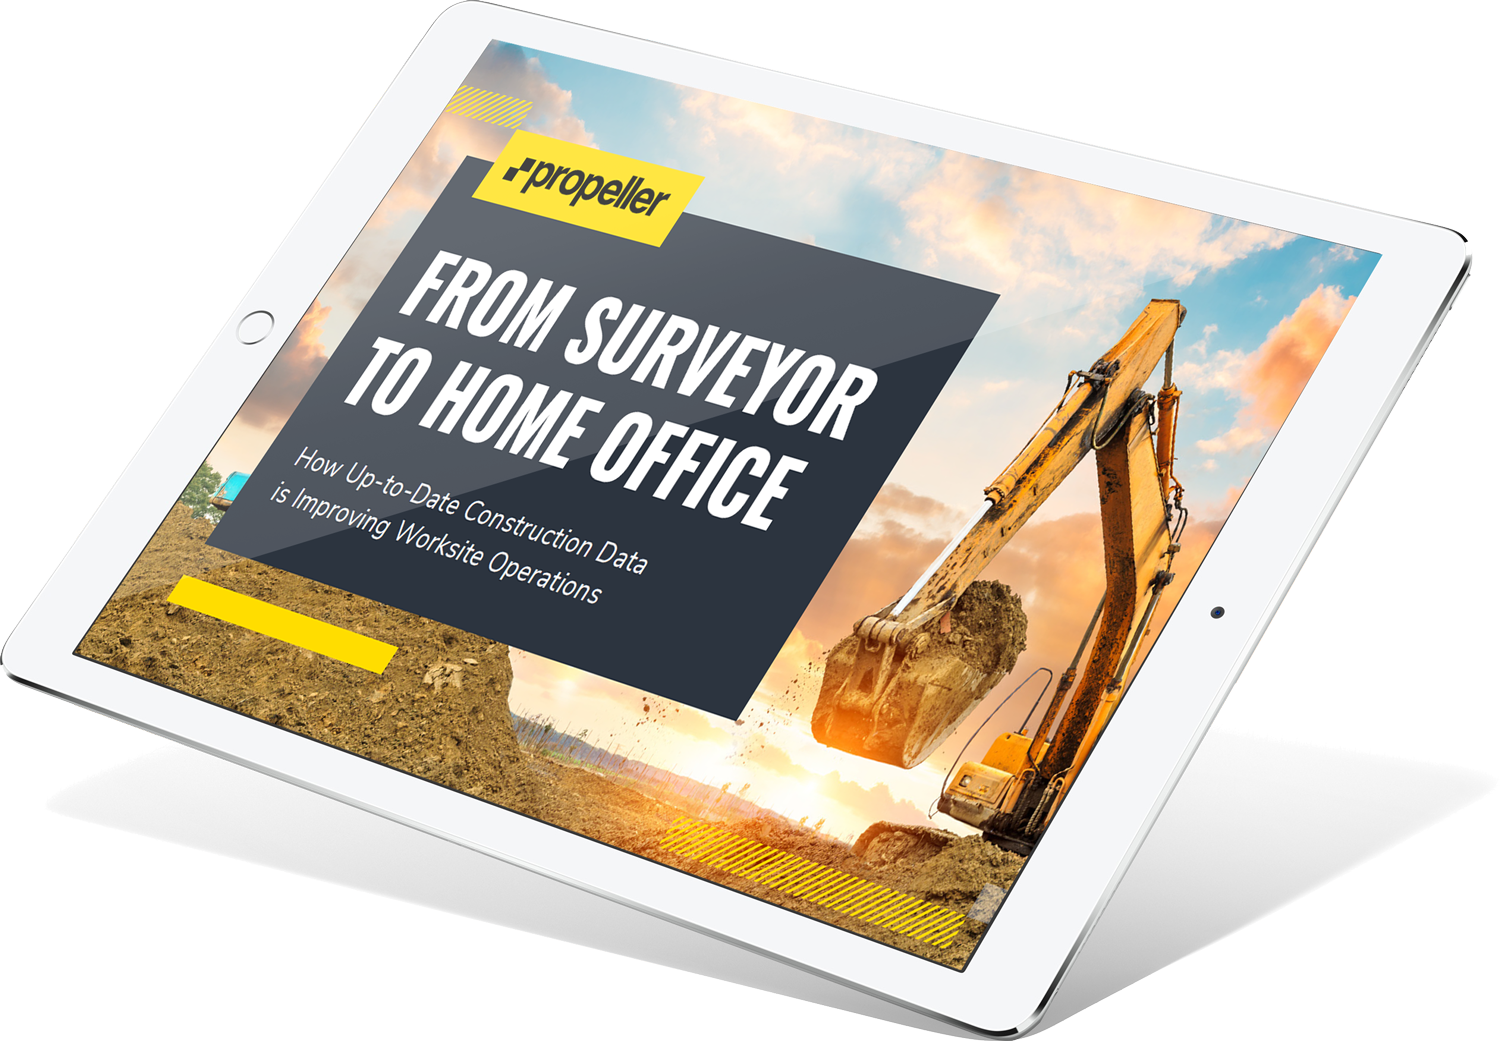 Surveyor-to-Home-office-2